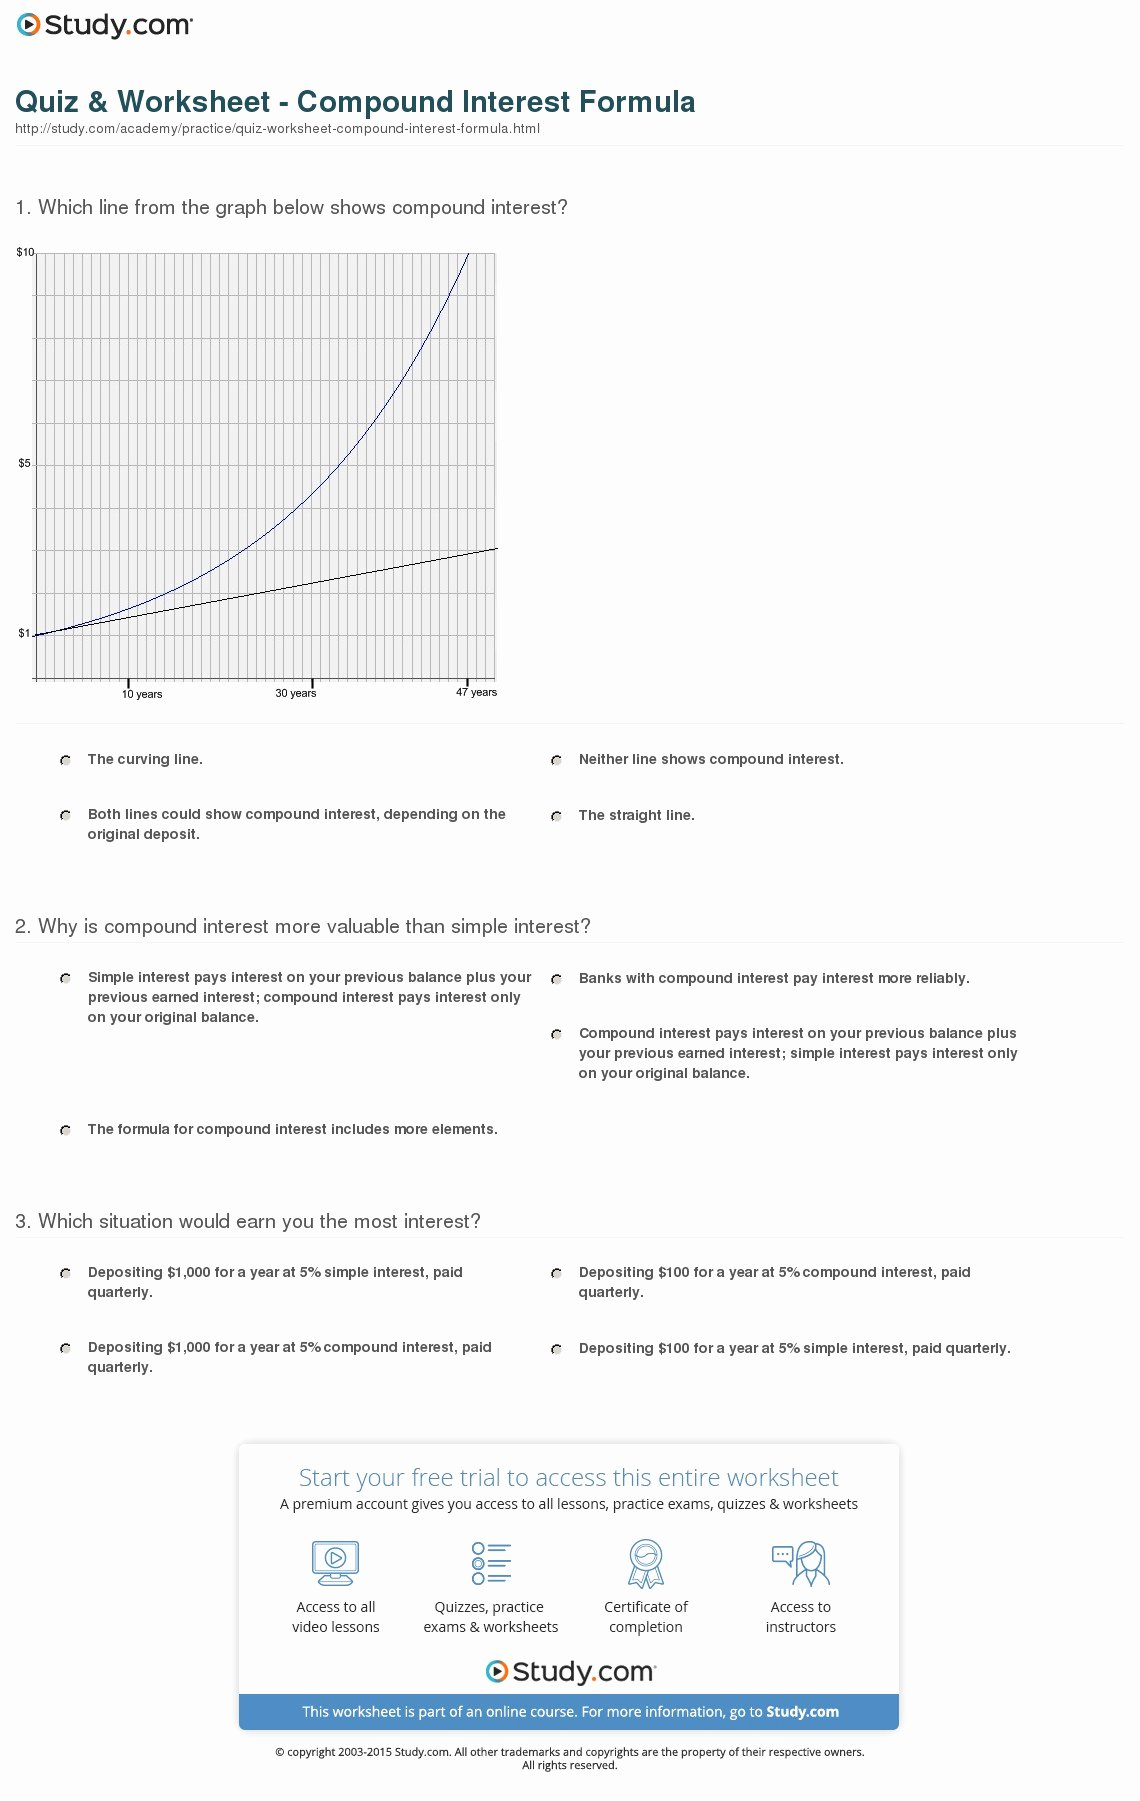 Simple and Compound Interest Worksheet Inspirational Quiz & Worksheet Pound Interest formula